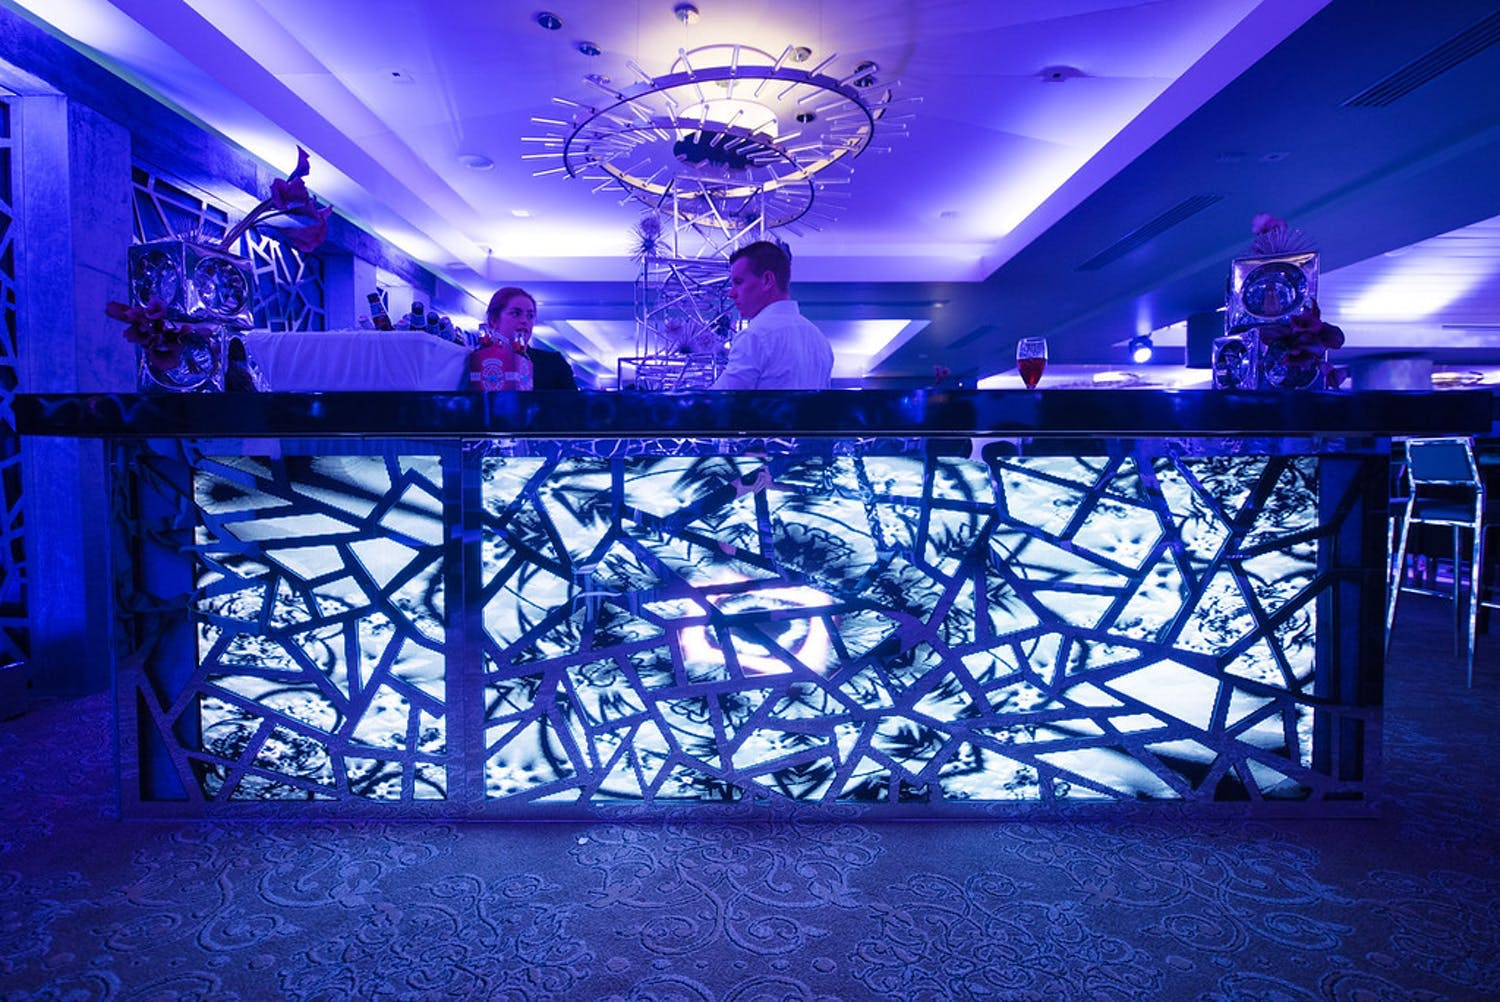 50th-birthday party with uplit ice-blue bar with geometric and fractured paneling in purple-uplit ballroom | PartySlate